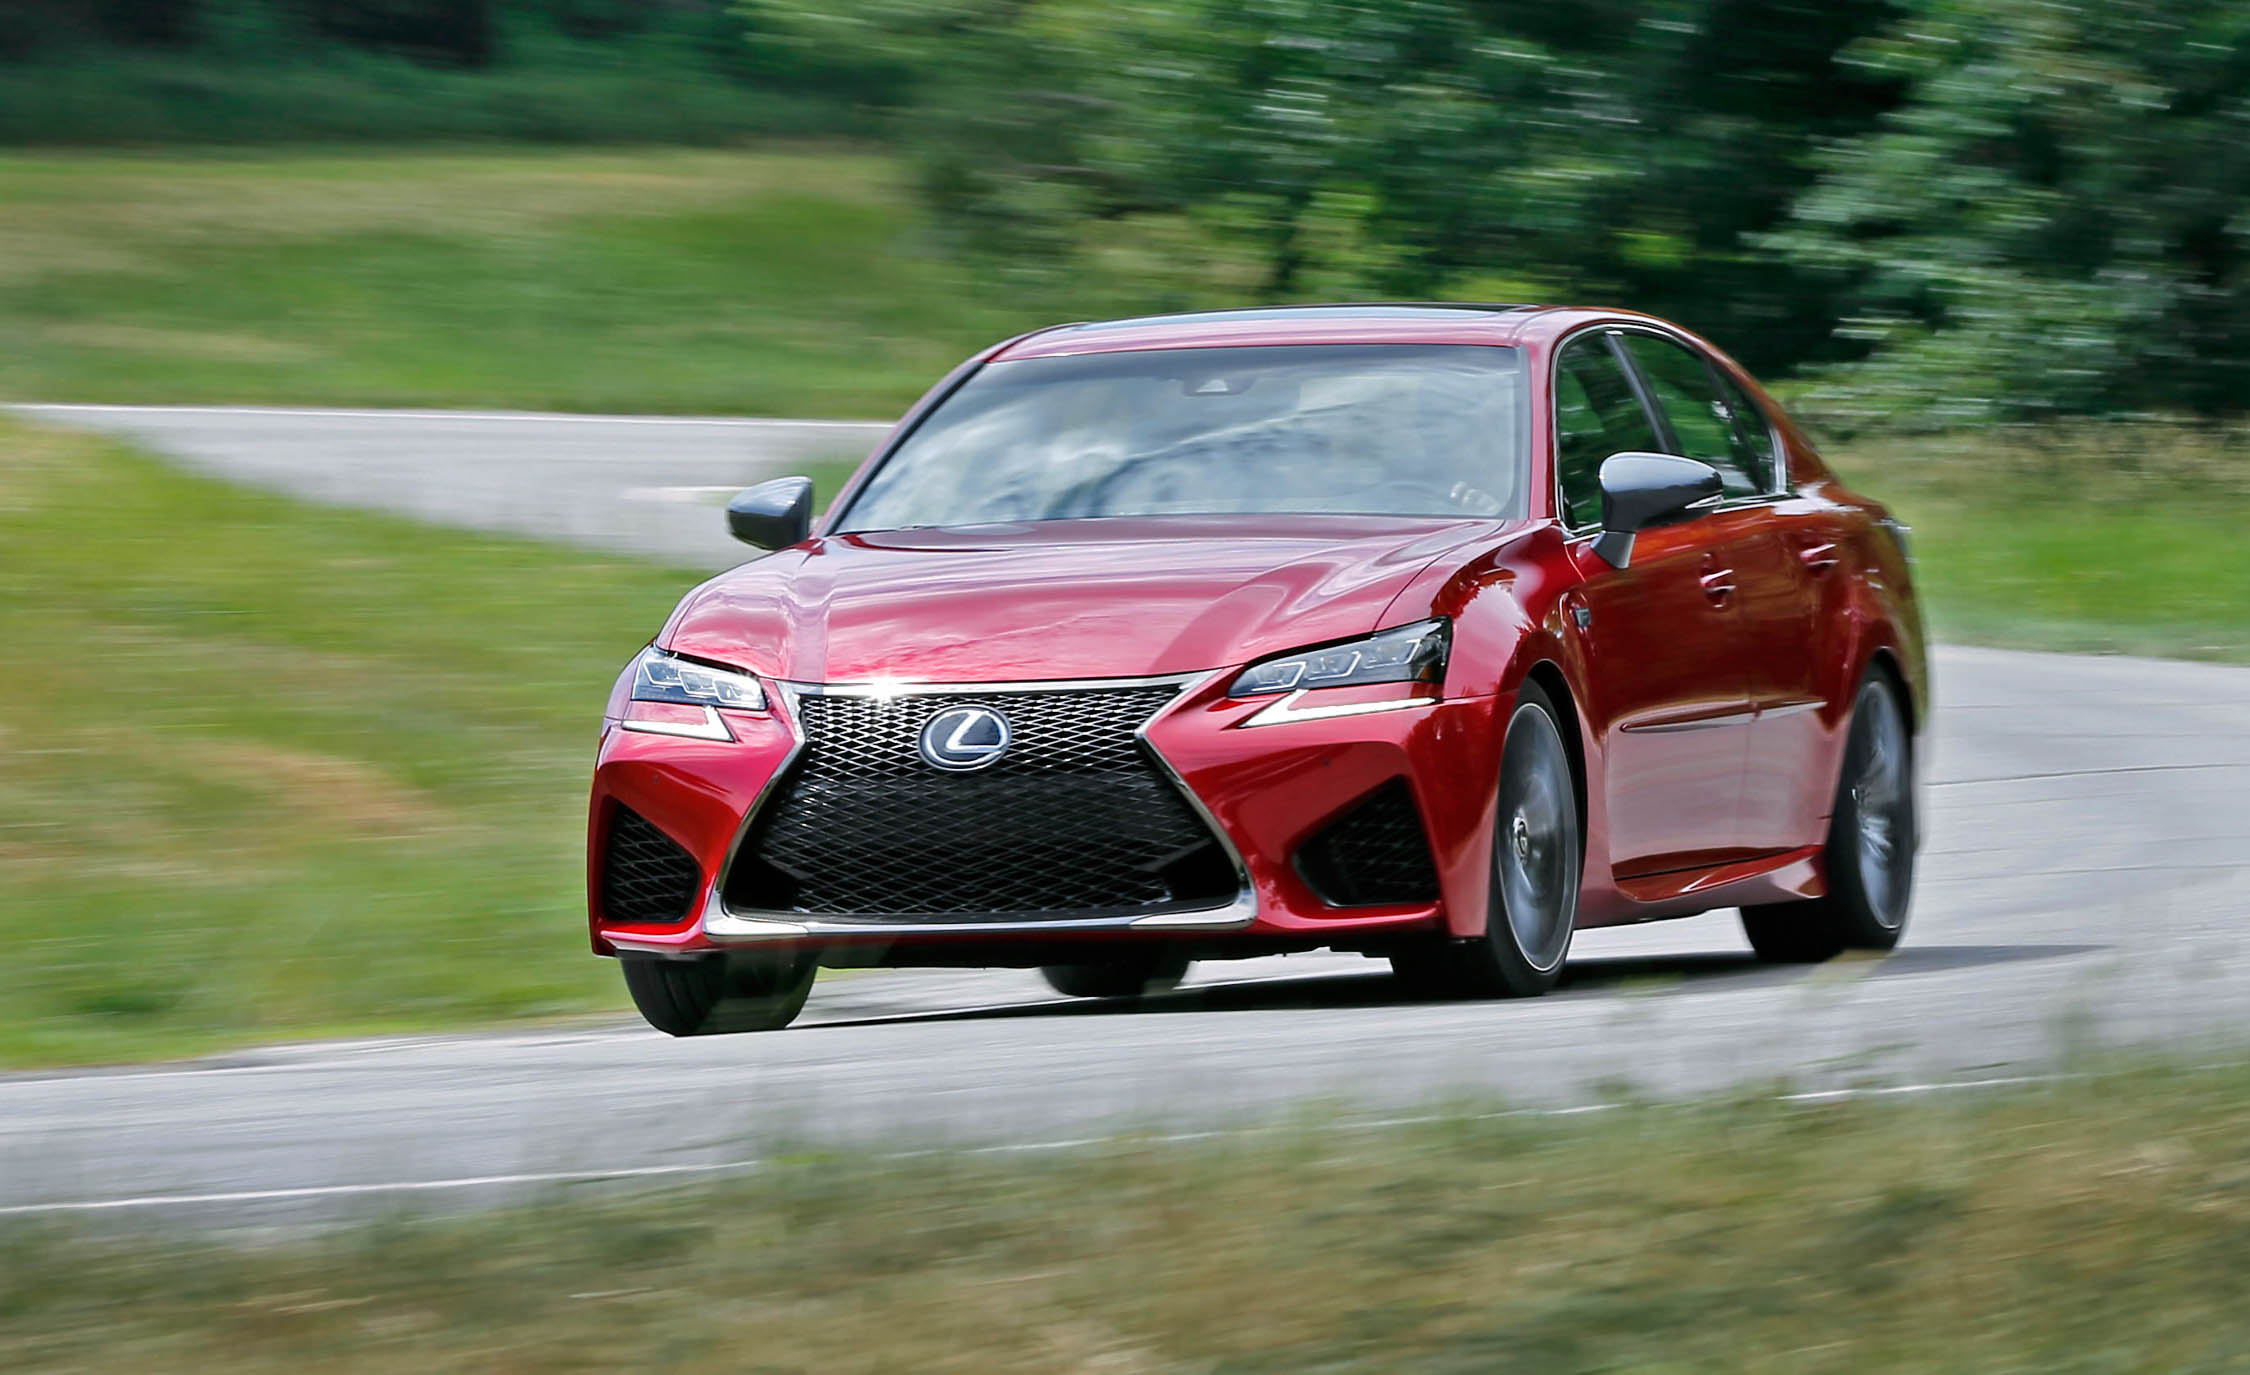 2016 Lexus Gs F Test Drive Front View (Photo 15 of 20)